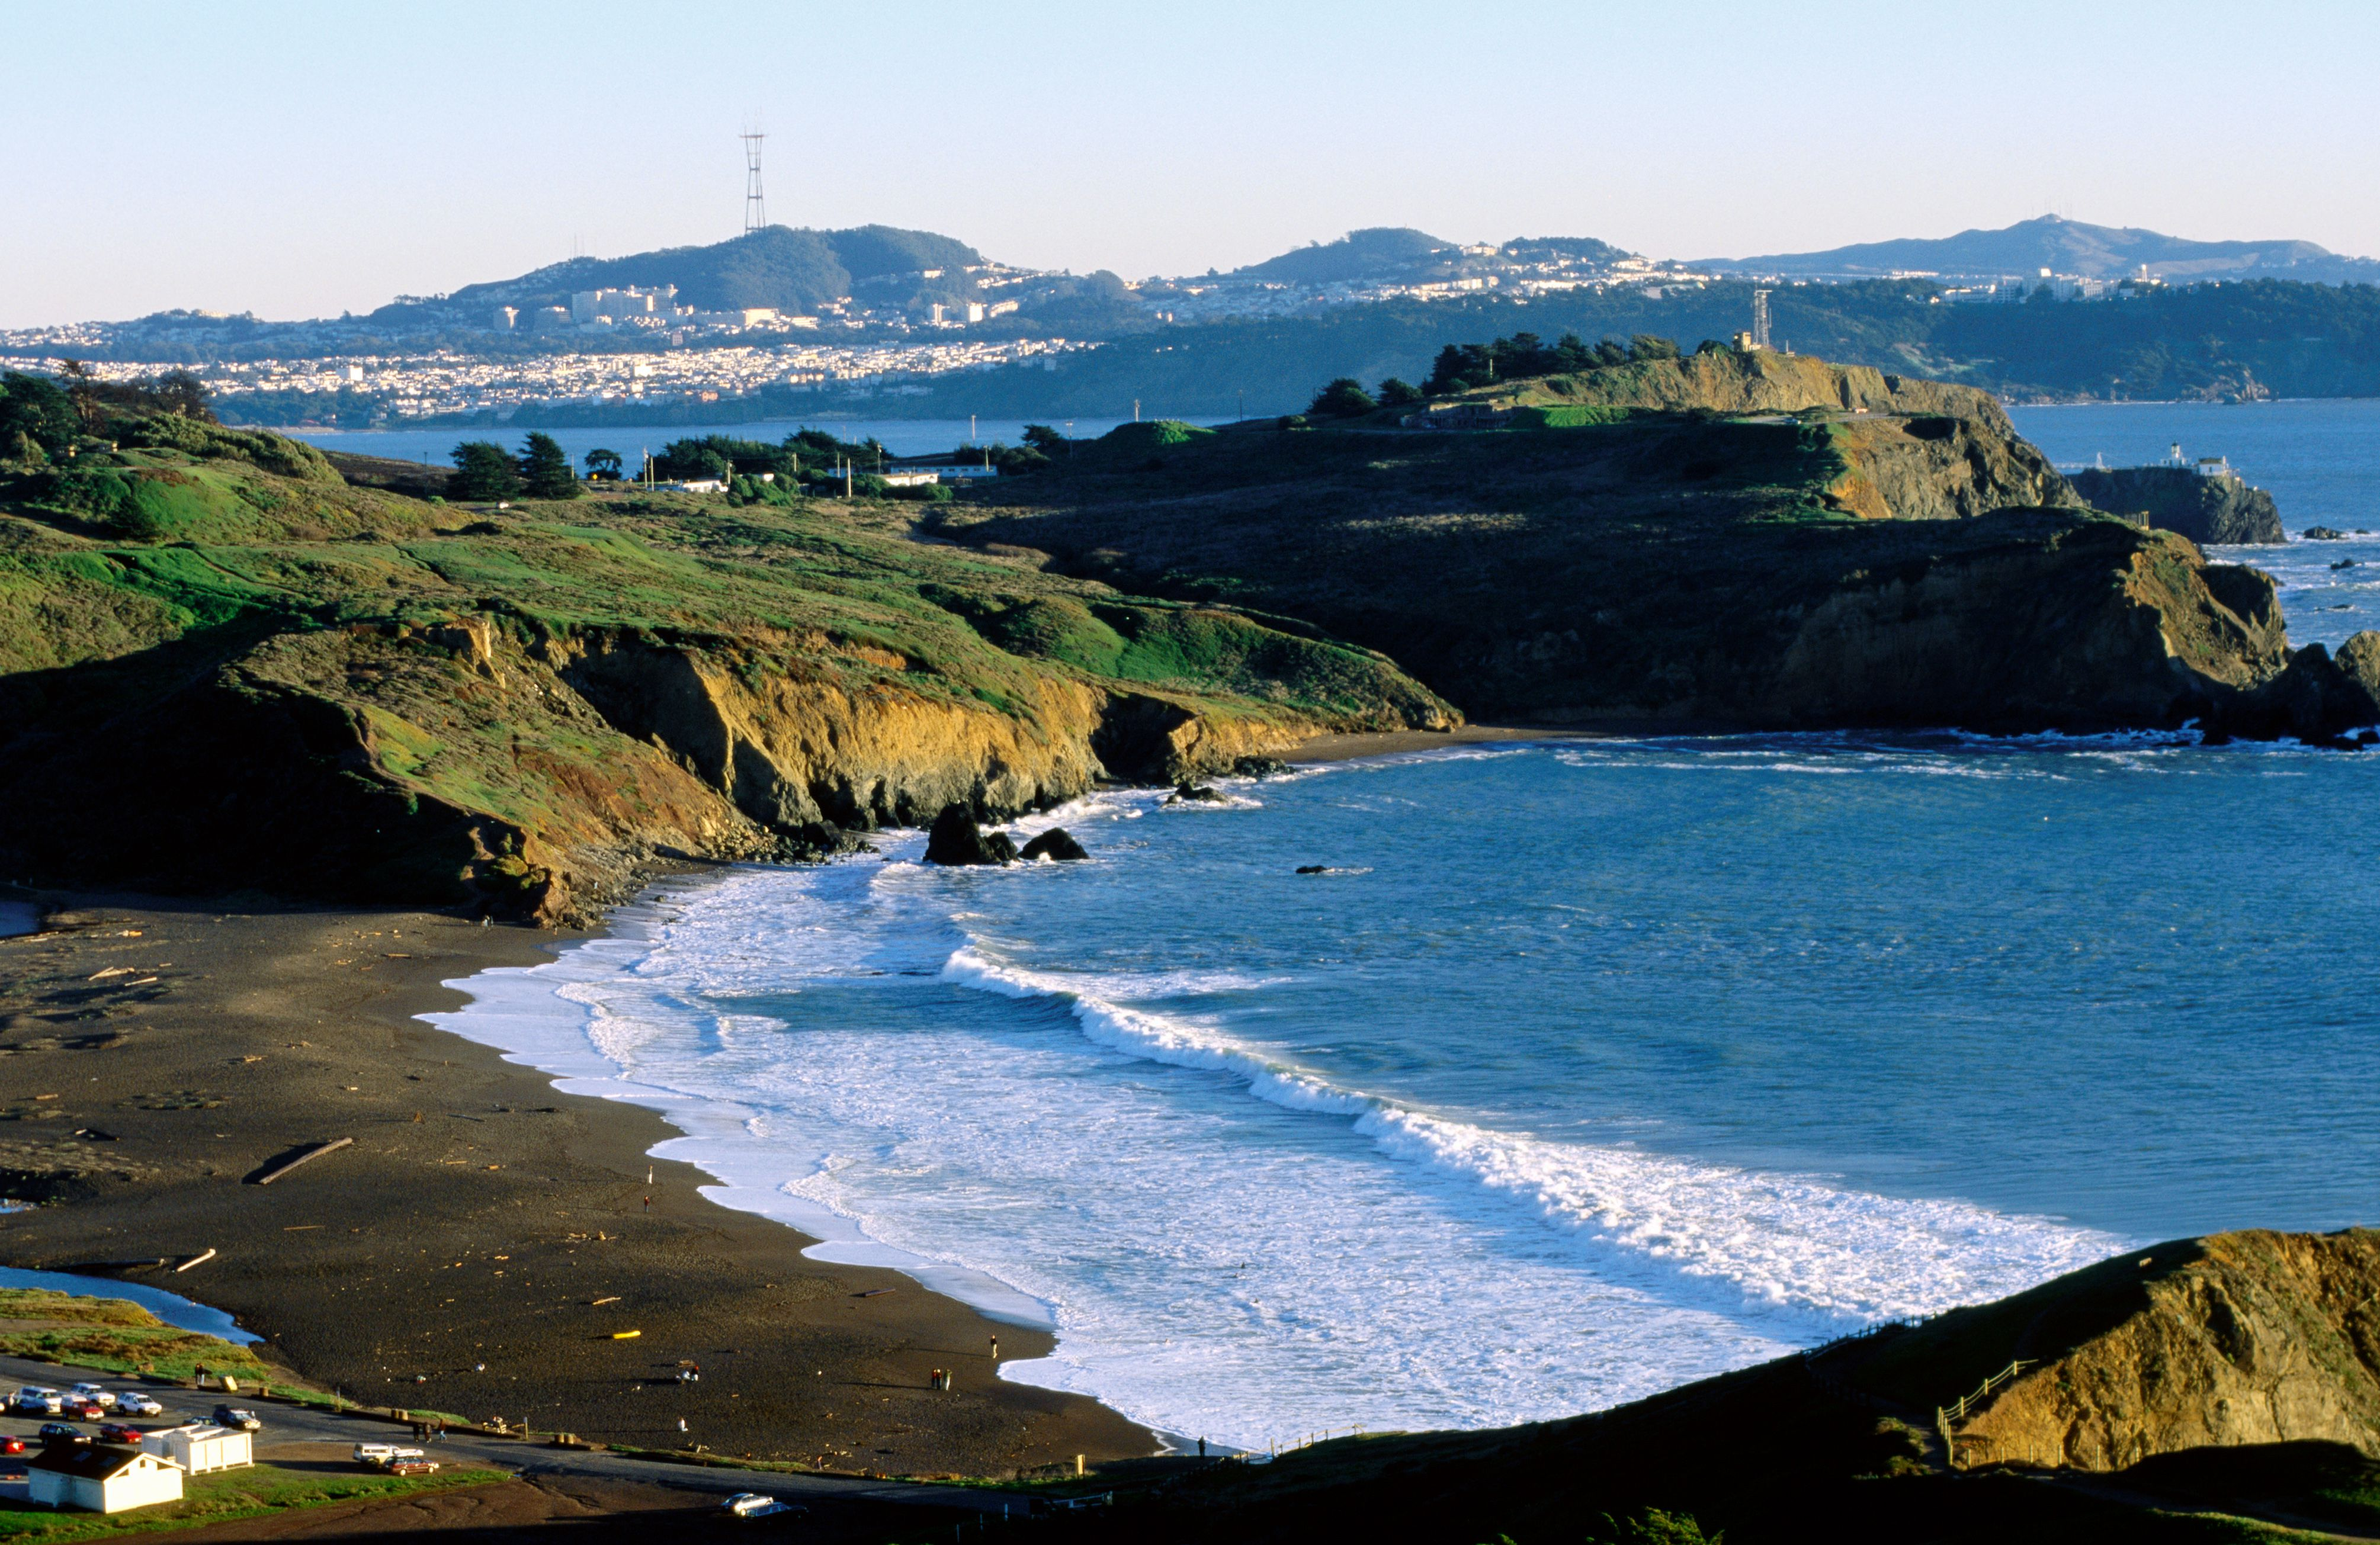 Rodeo Beach at Marin Headland in Golden Gate National Recreation Area